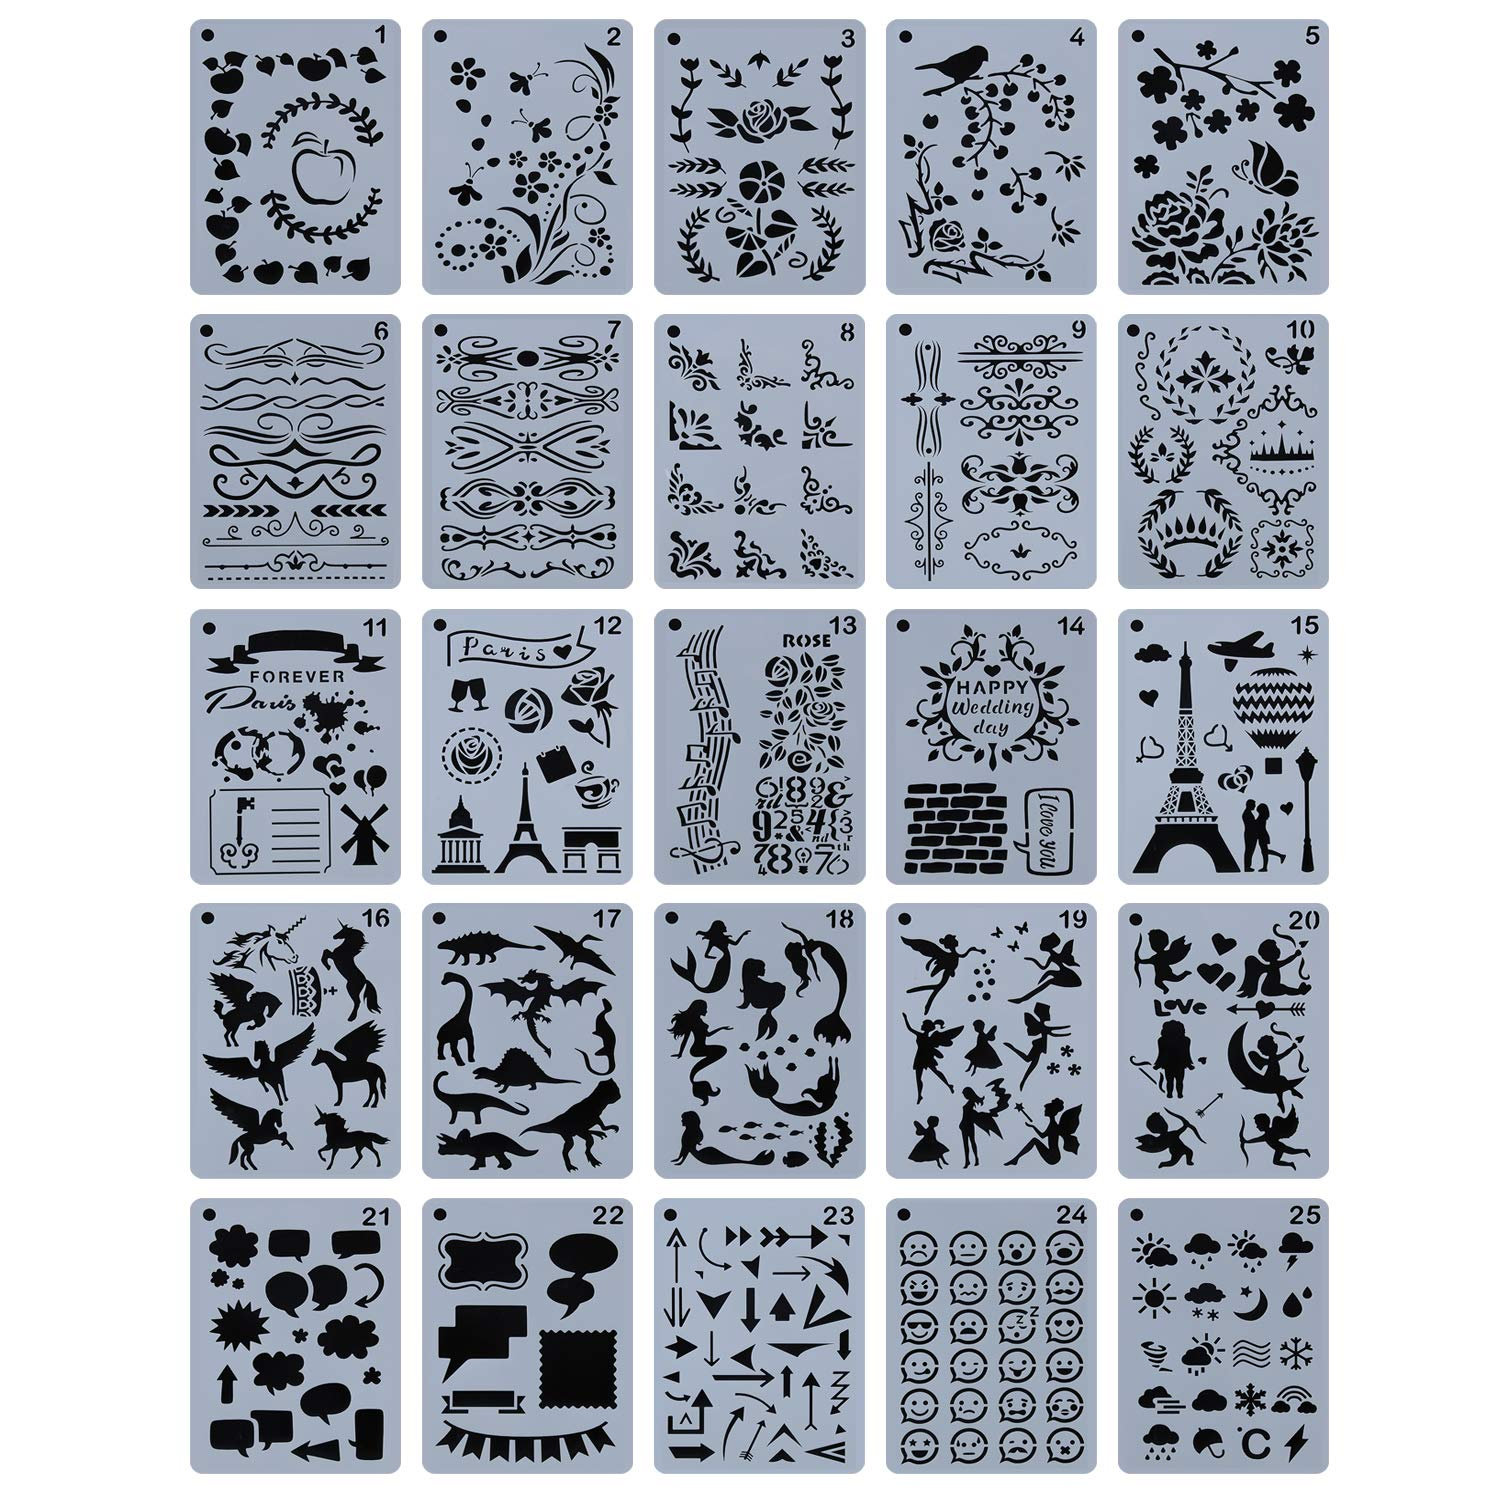 YUEAON 25-Pack 5'' x 7'' Journal Stencils Drawing Floral Template Stencil Supplies for DIY Bullet Scrapbook Notebook Dairy Planner Craft by YUEAON